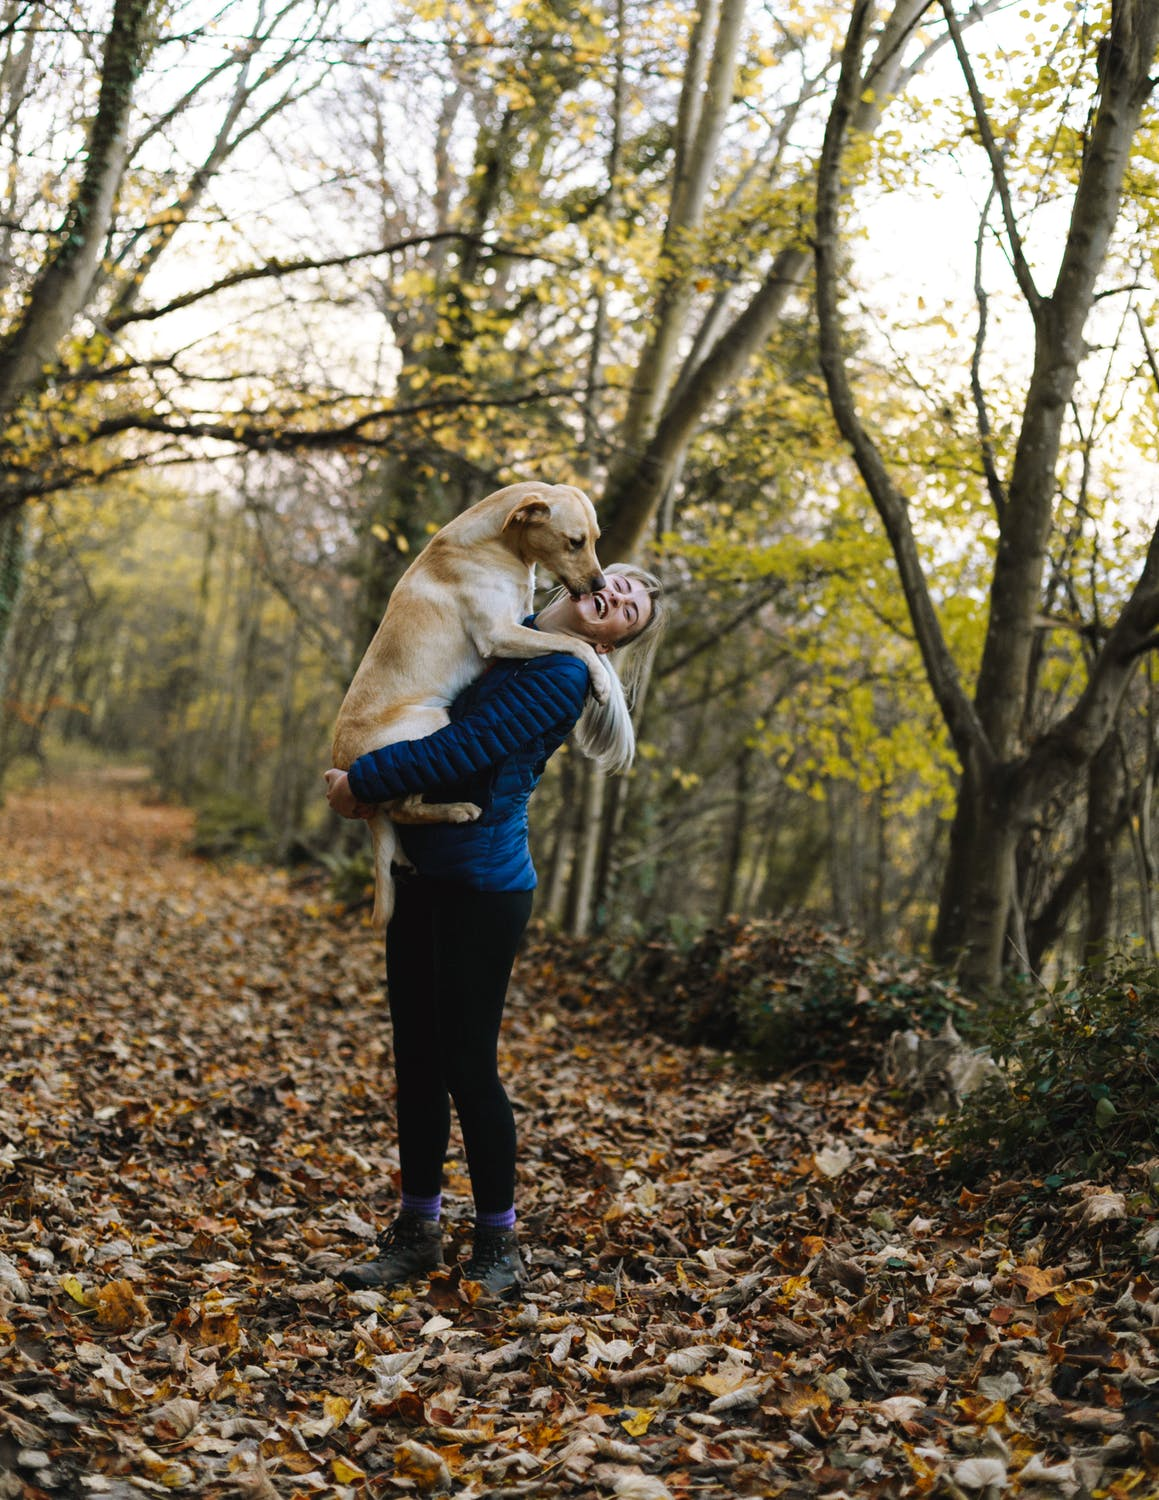 7 Benefits of Playing With Your Dog